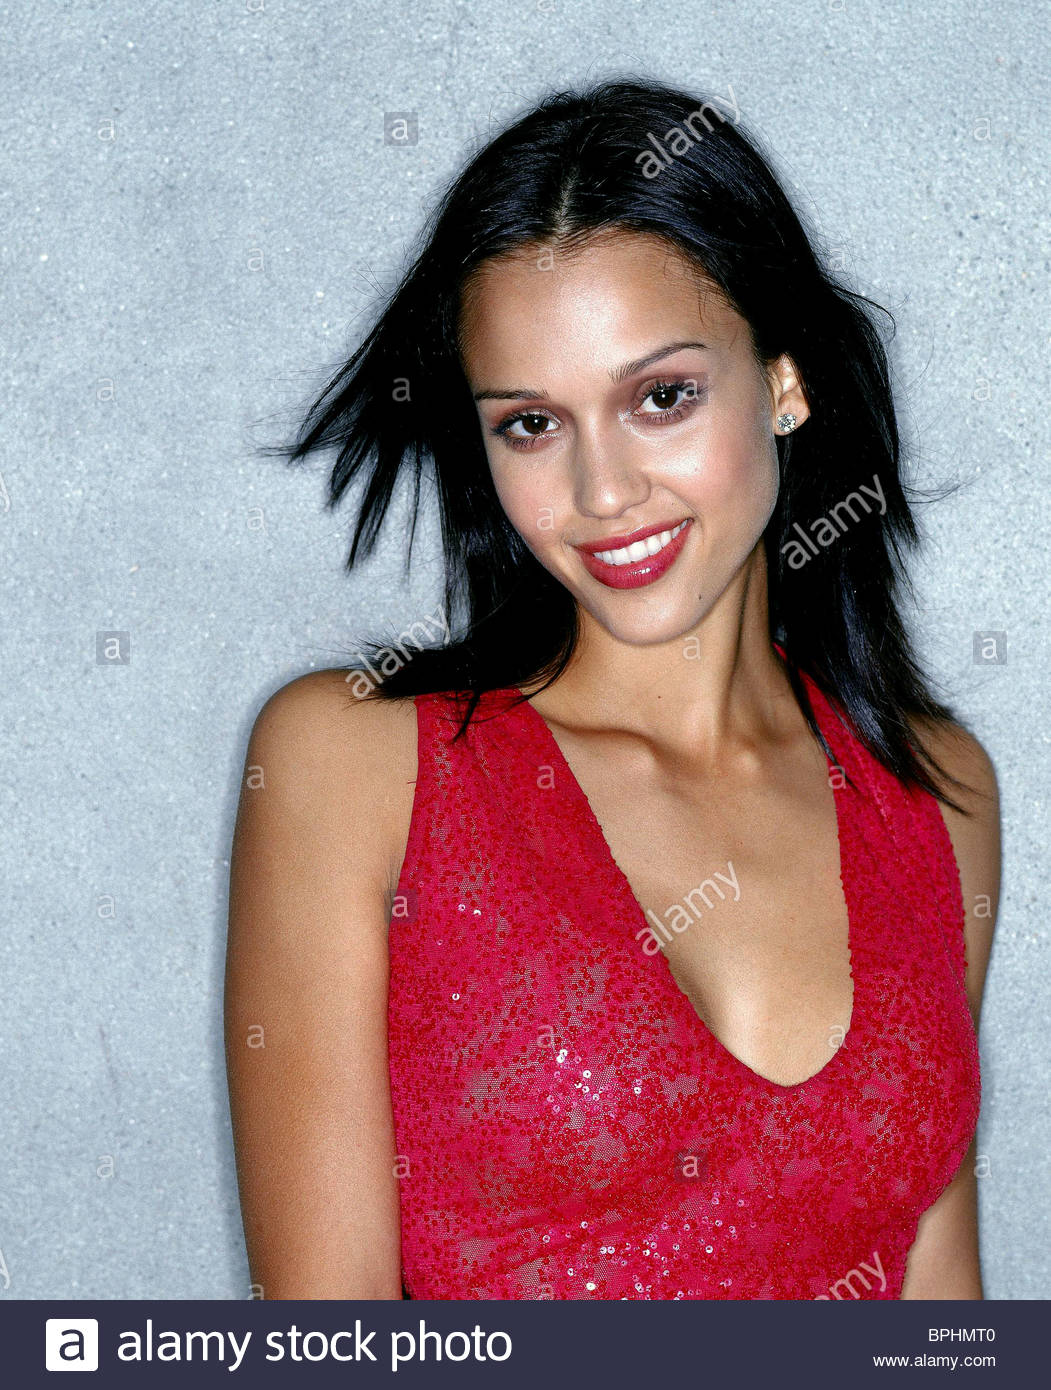 Alba Photographie Jessica Alba Dark Angel 2001 Banque D Images Photo Stock